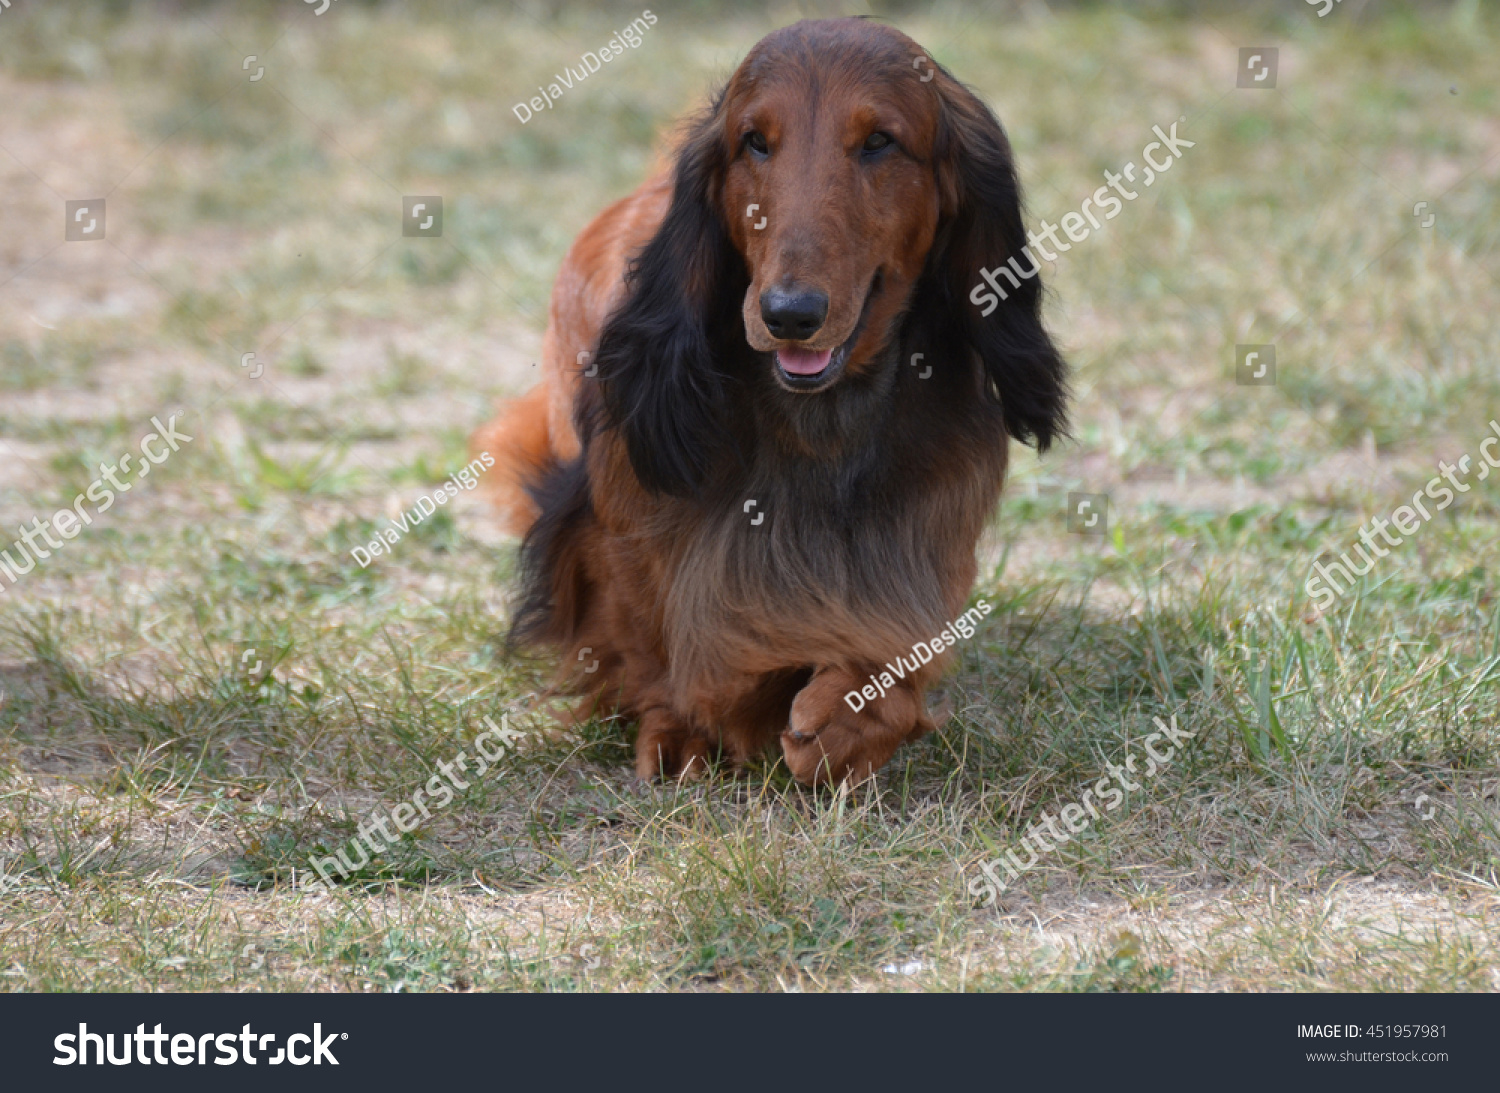 Cute Long Haired Dachshund Dog Field Stock Photo (Edit Now) 12